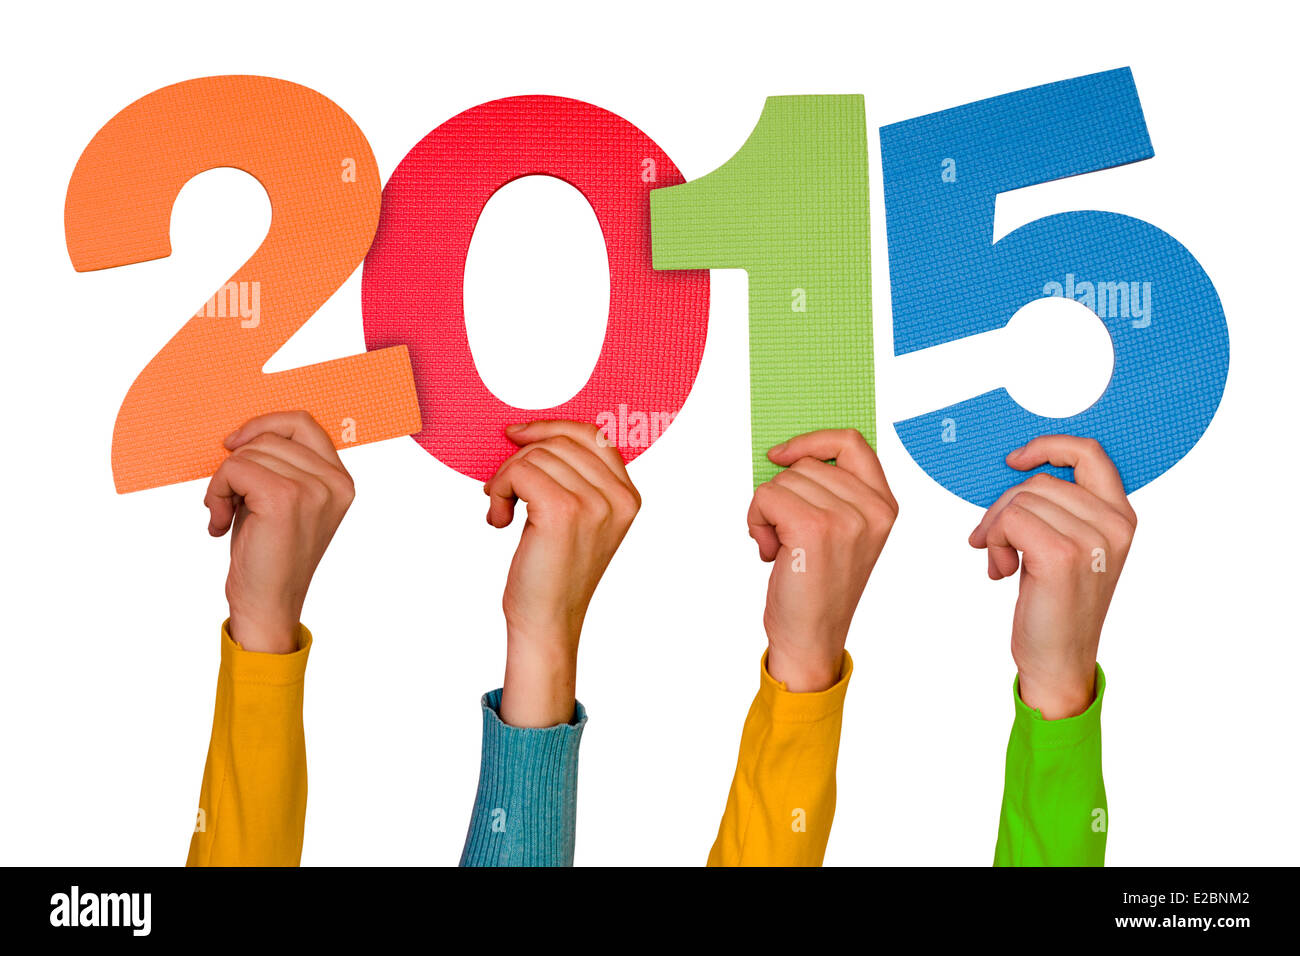 Hands with color numbers shows year 2015. Isolated on white background - Stock Image